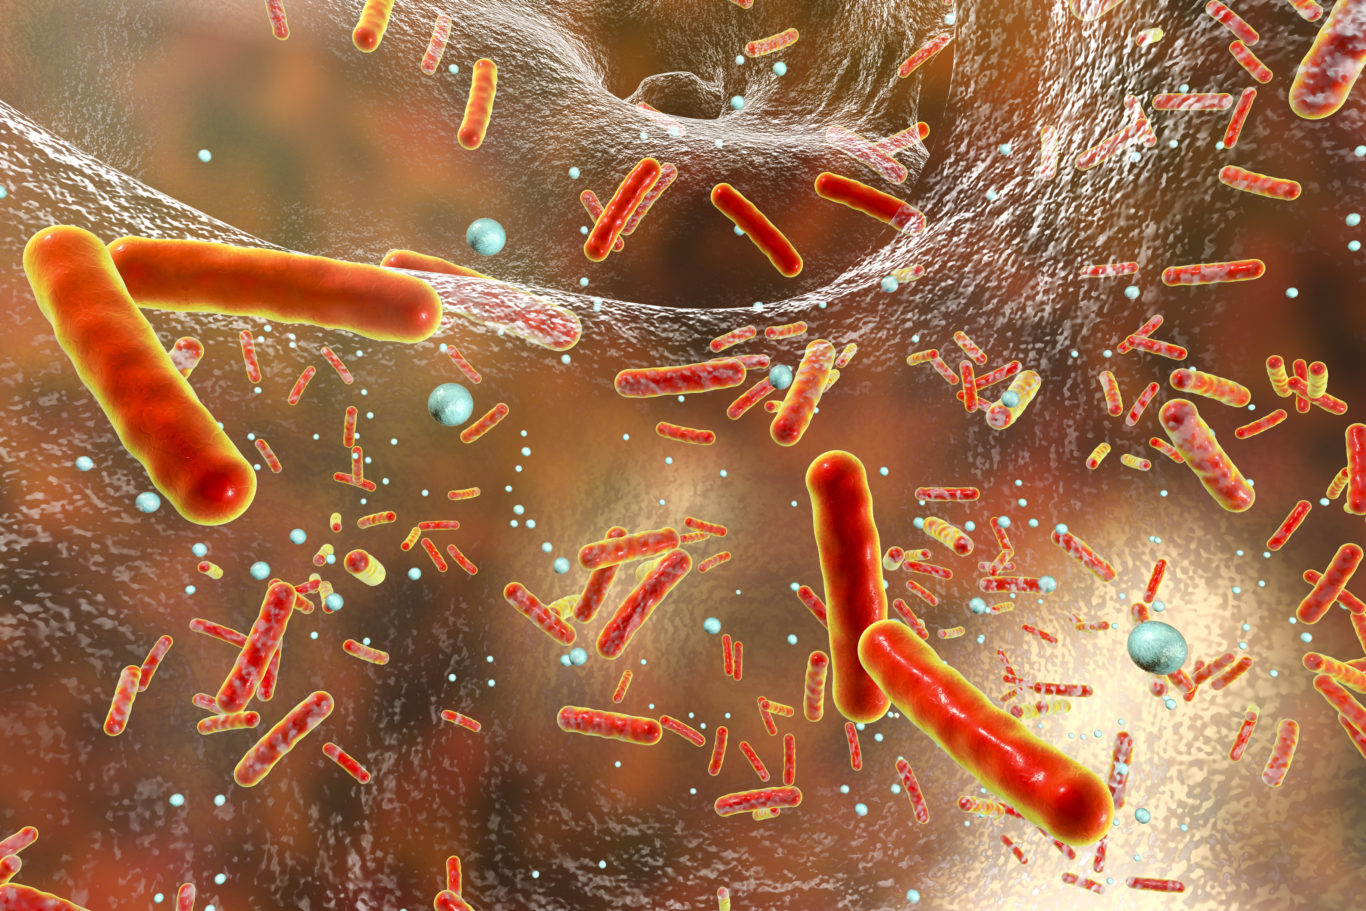 staphylococcus aureus and other infectious bacteria essay Methicillin-resistant staphylococcus aureus versus staphylococcus aureus definition our skin, nose, and respiratory tract provide a home for the gram-positive bacterium known as.